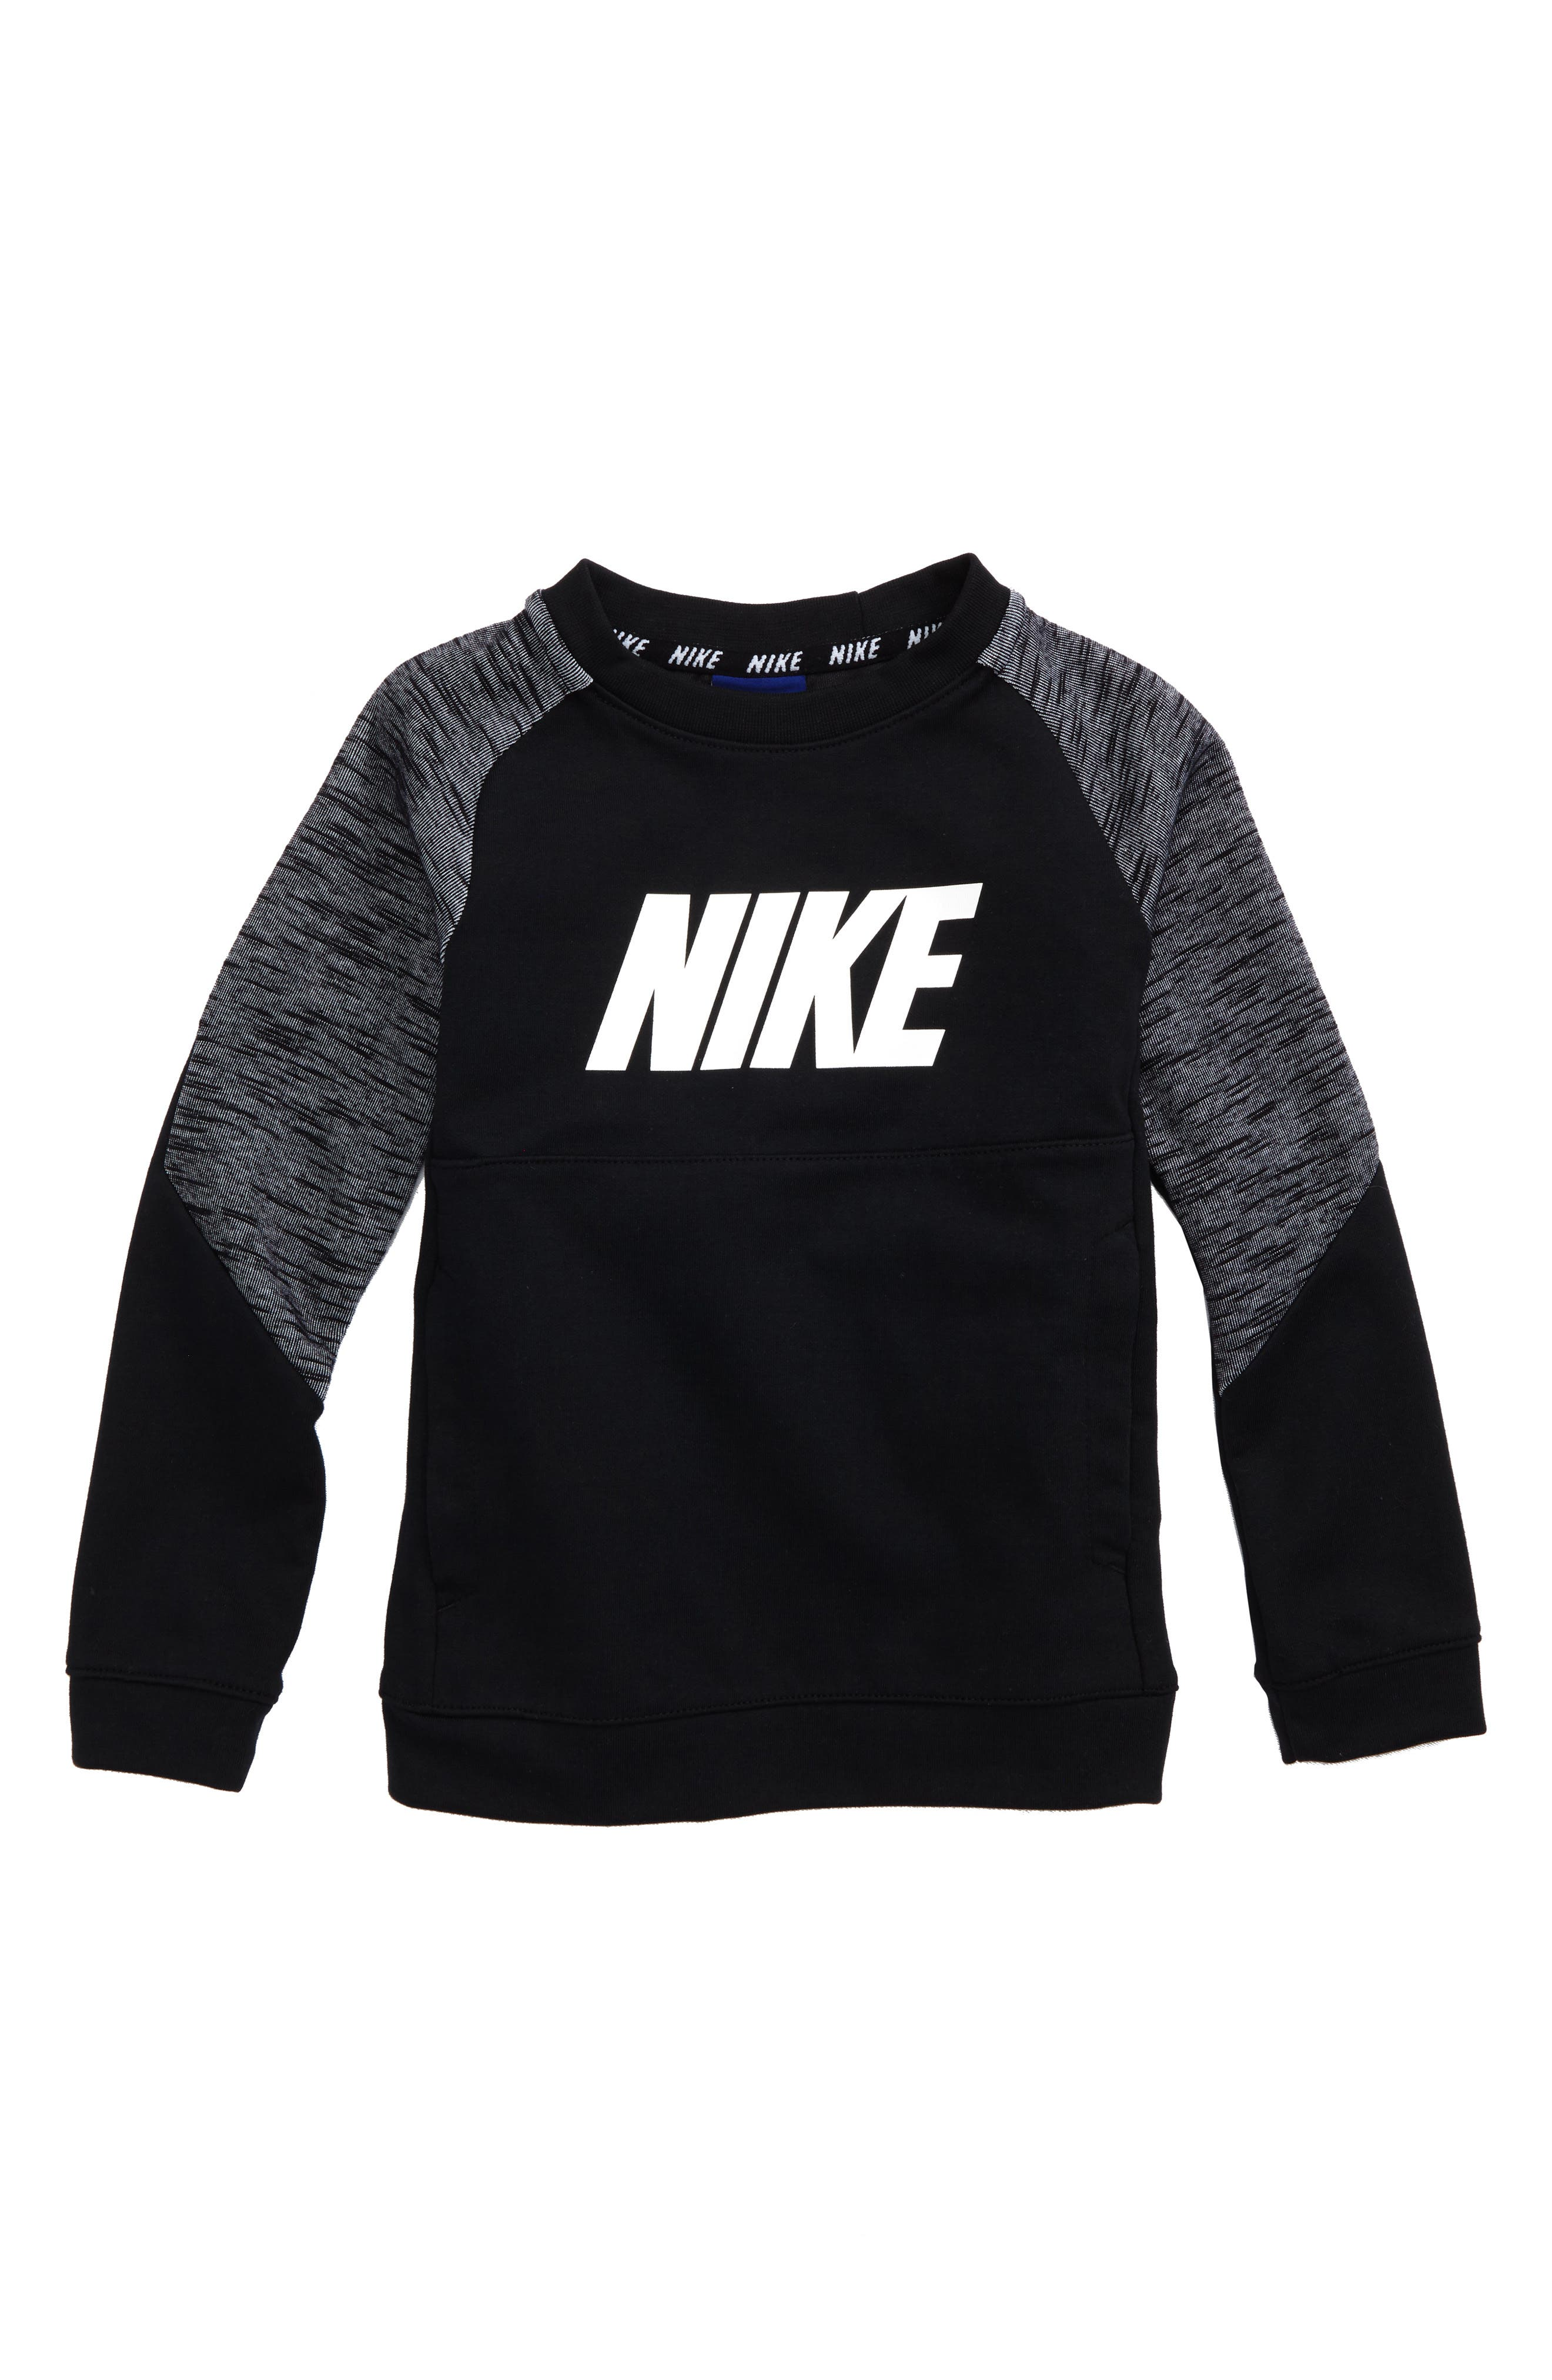 Nike Toddler//Boys Zip-Up Hoodie